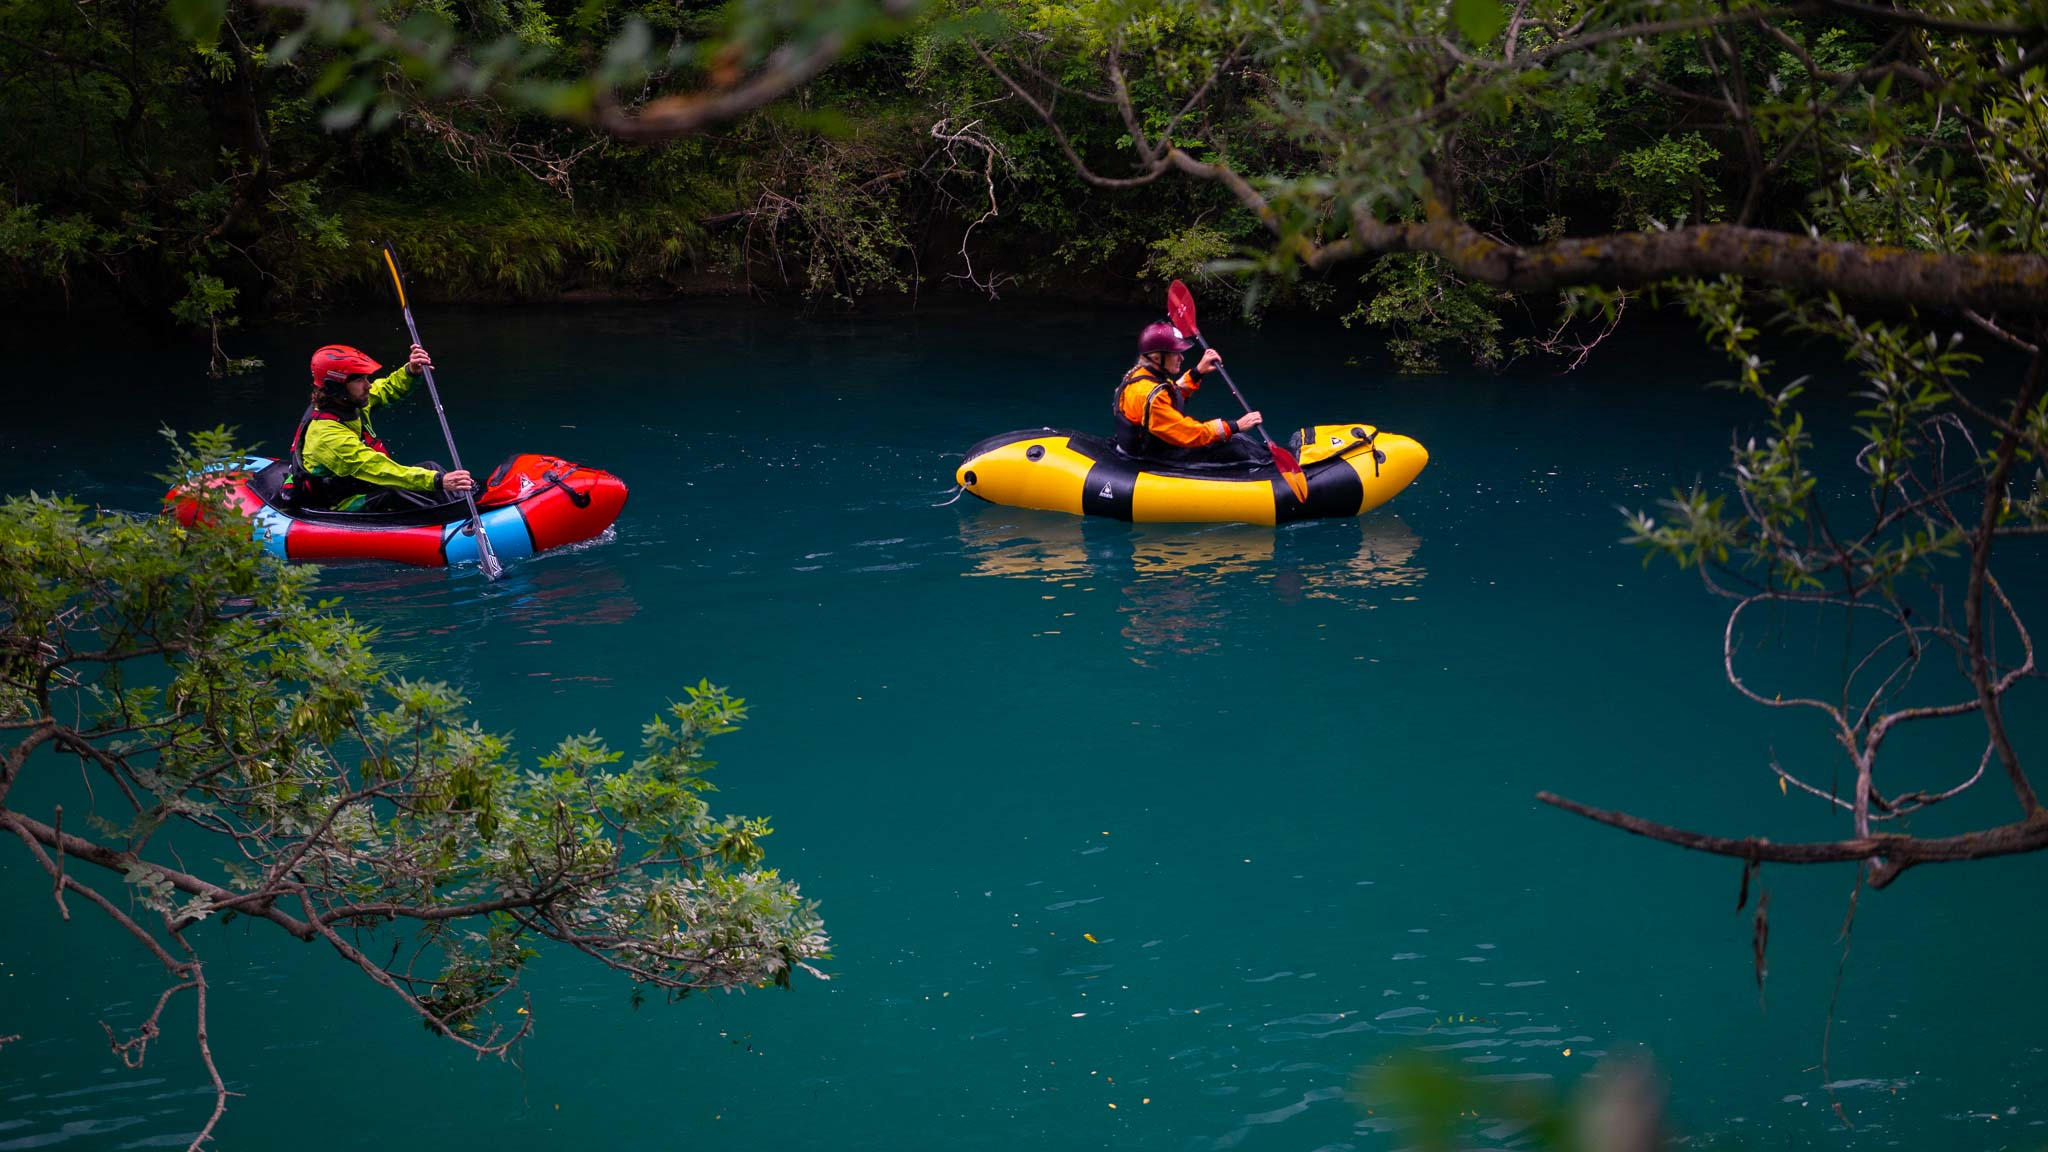 Packrafting Mreznica RIver Adventure | Raftrek Adventure Travel